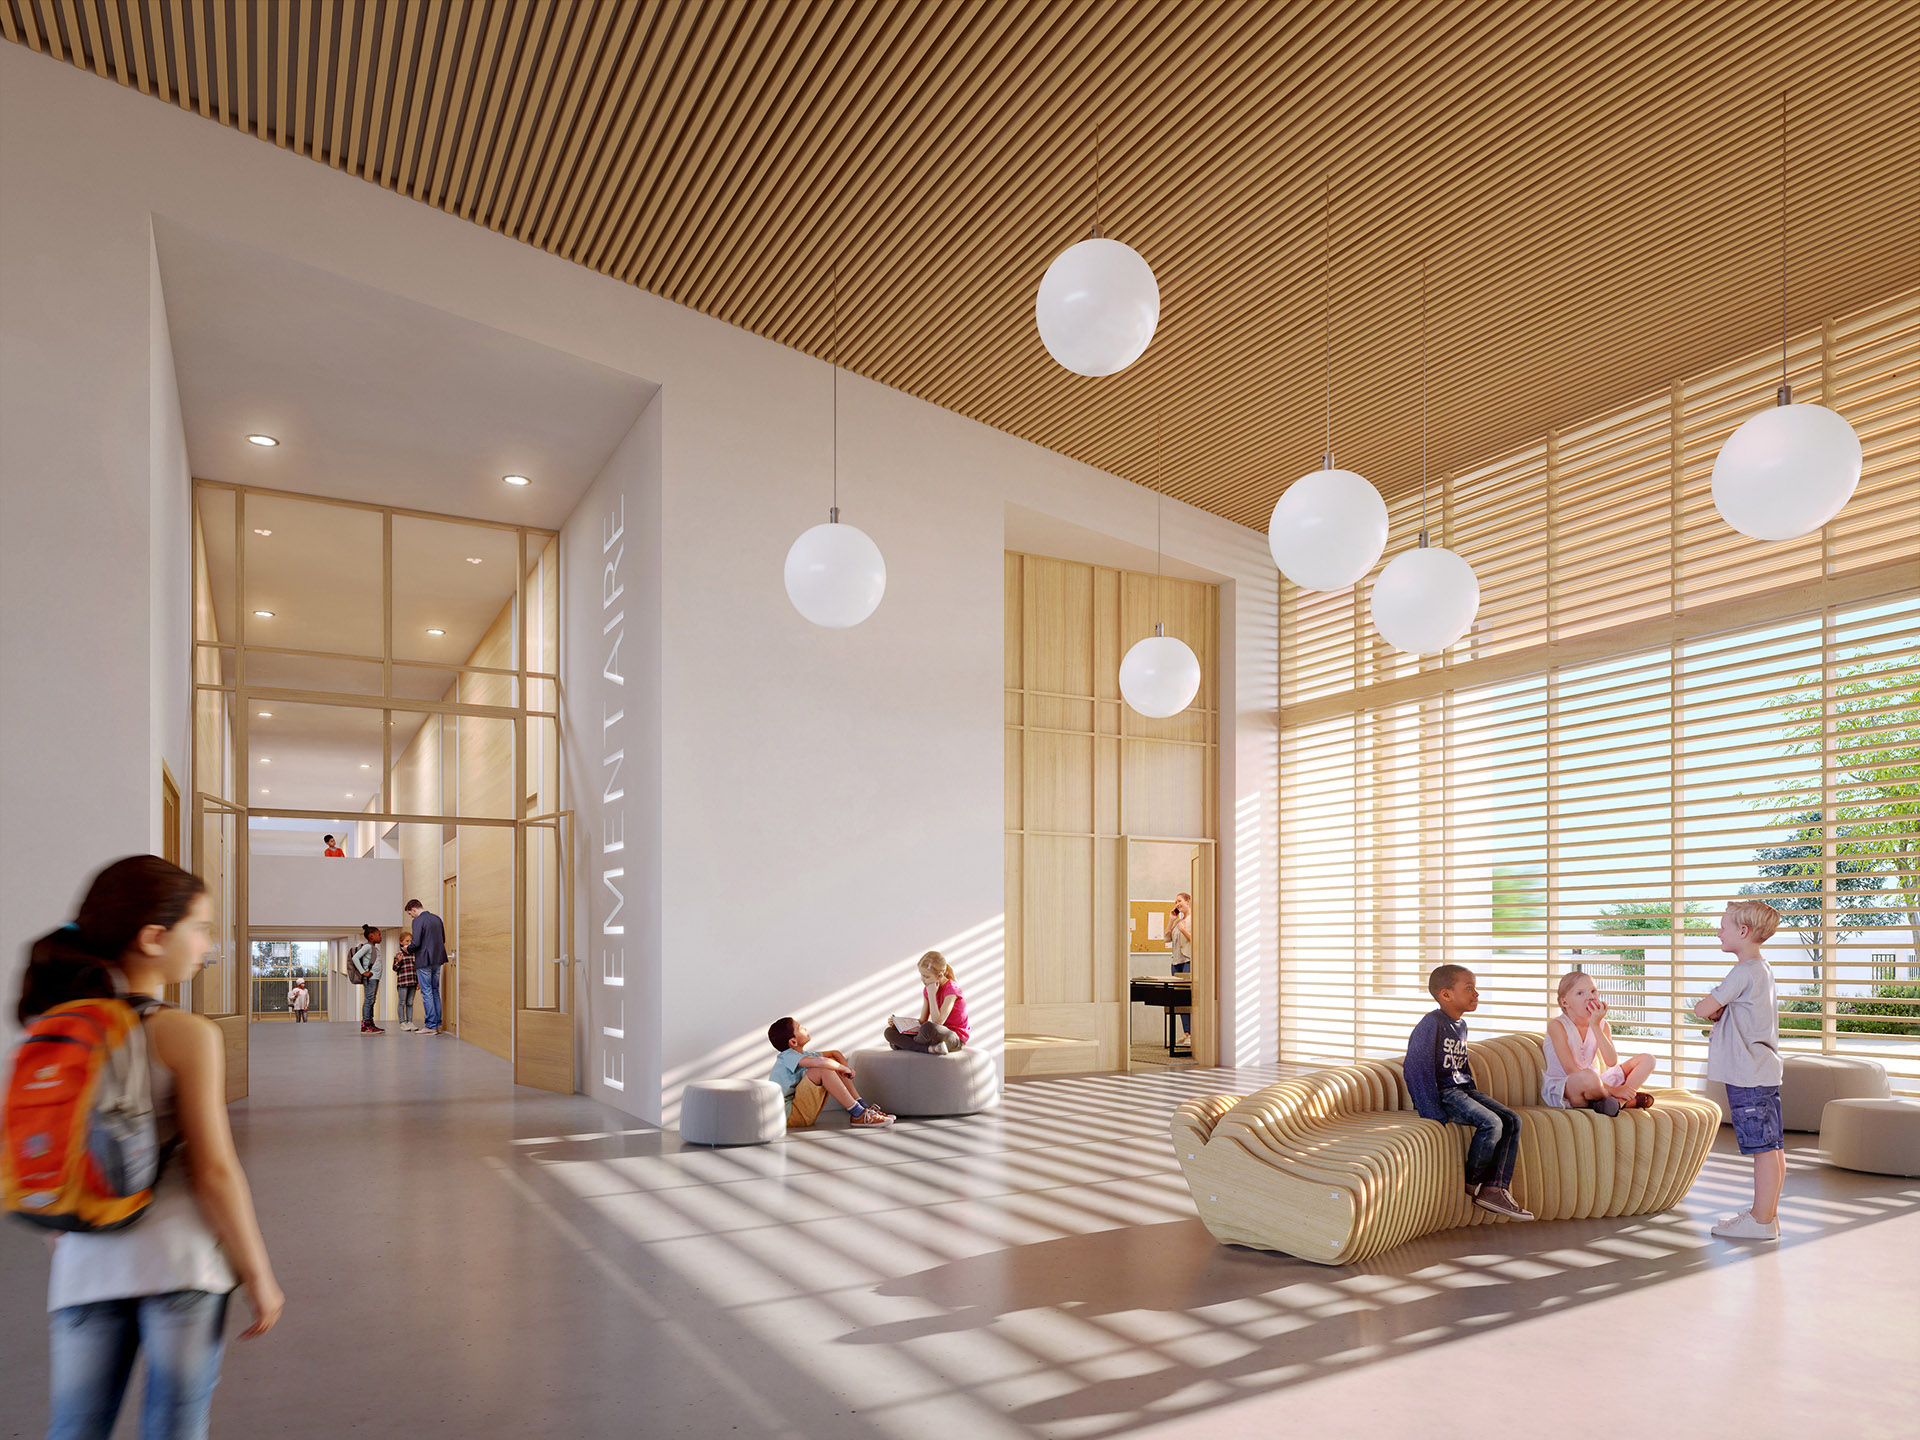 3D visualization of a modern school hall with children